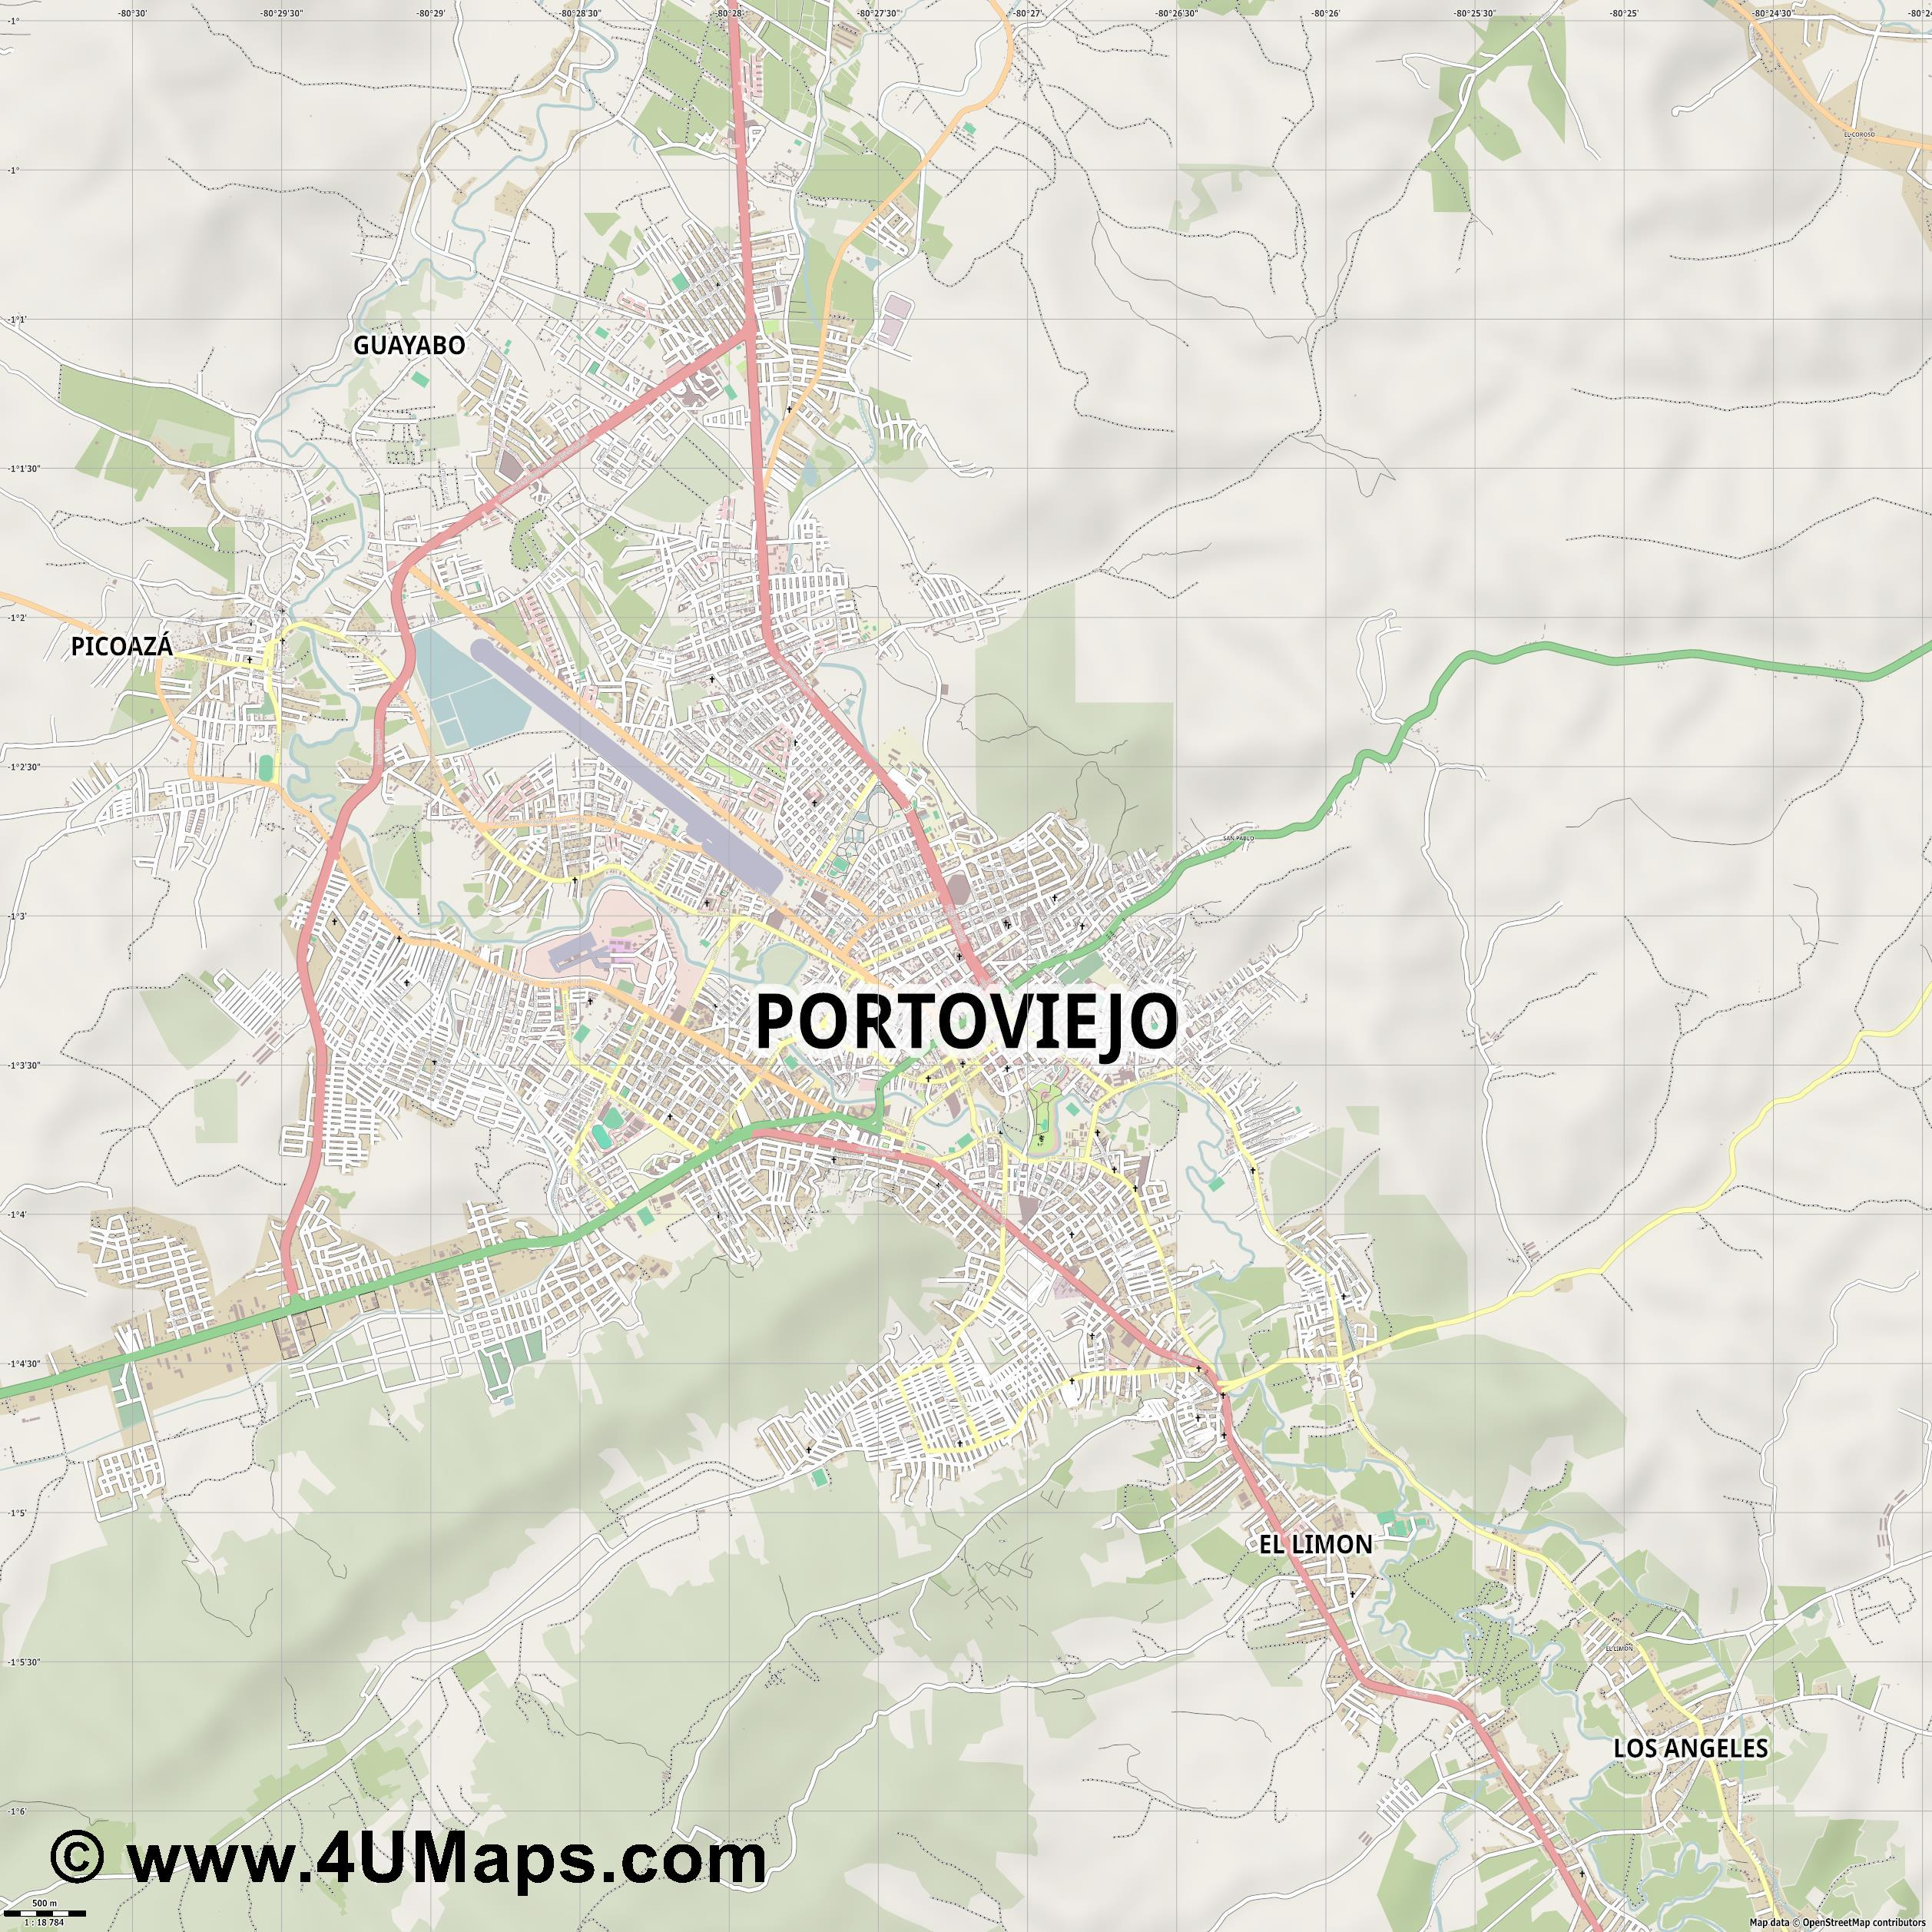 Portoviejo  jpg ultra high detail preview vector city map